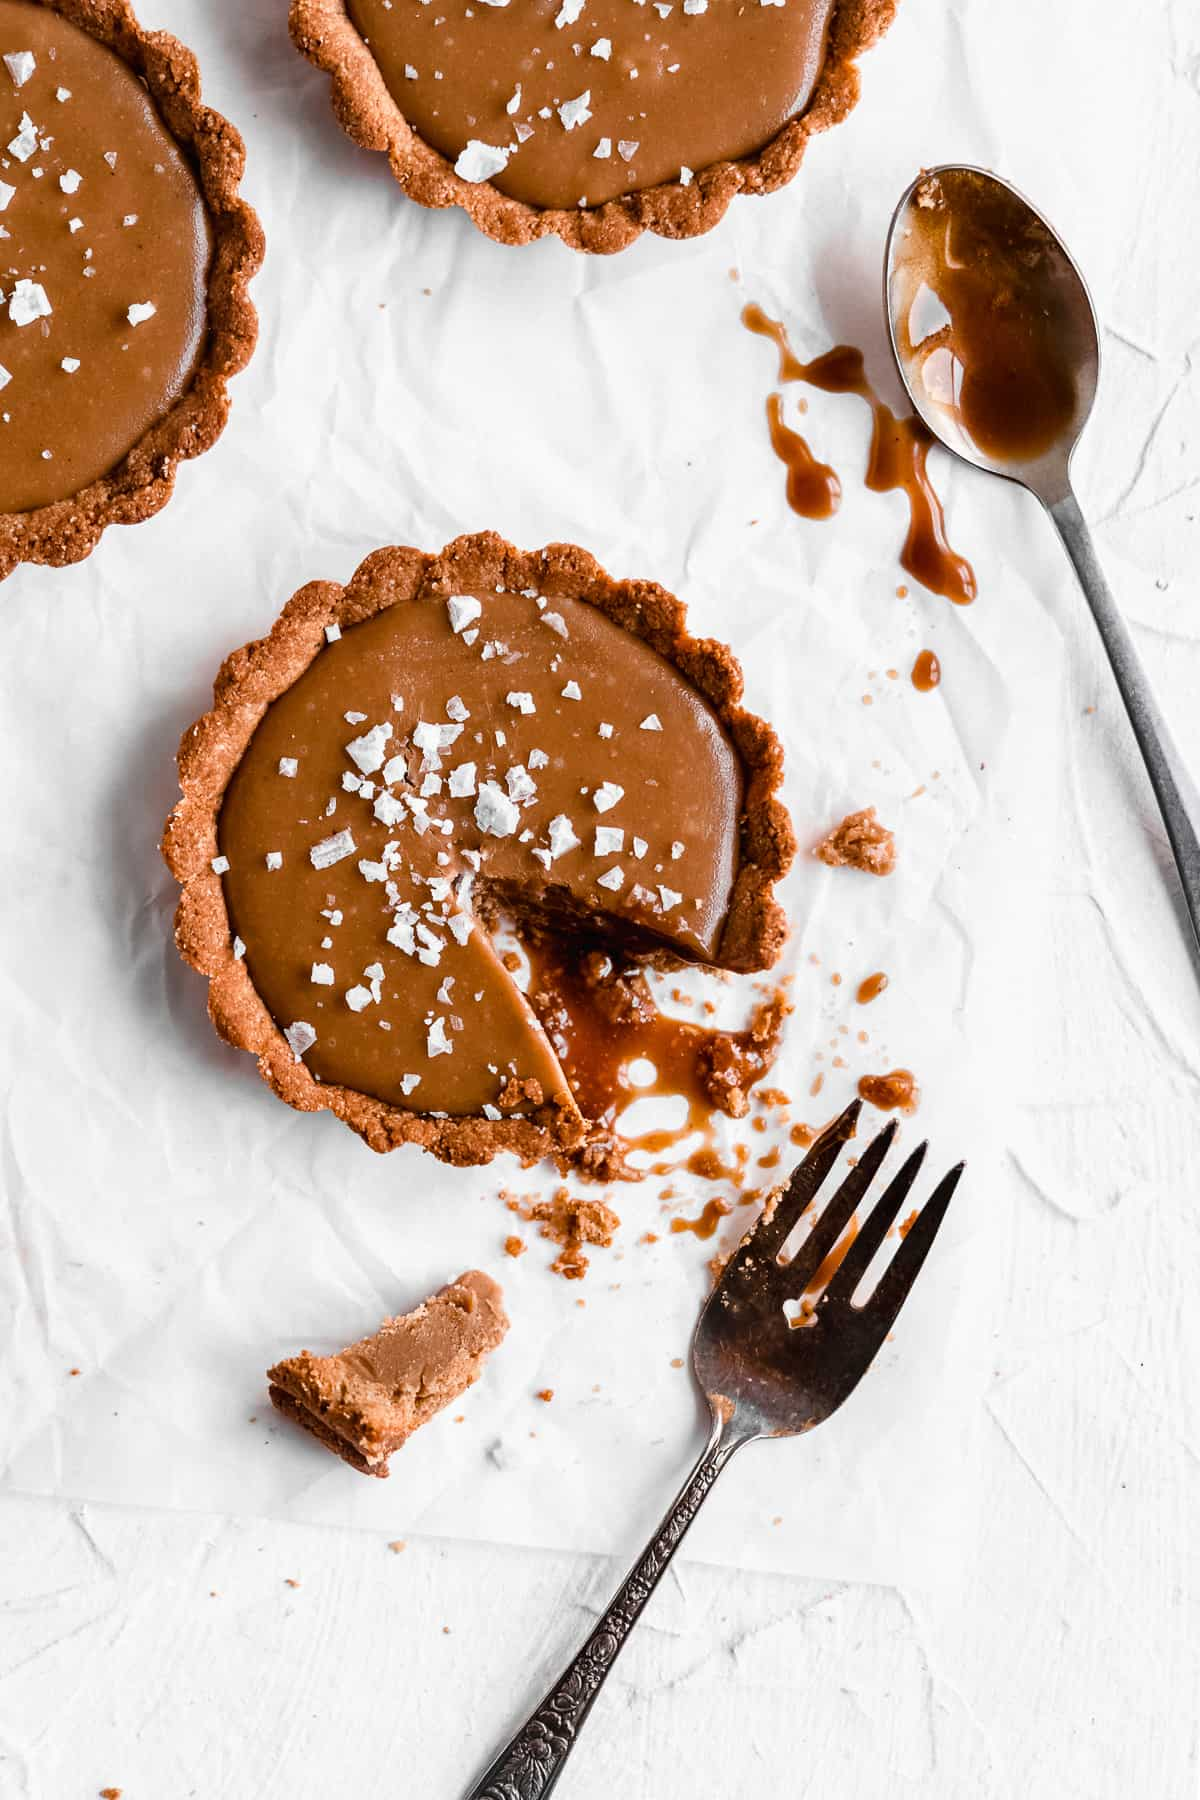 Overhead photo of completed Vegan Salted Caramel Tarts arranged on white parchment paper.  A bite has been taken from one tart and a spoon lays nearby with caramel sauce on it.